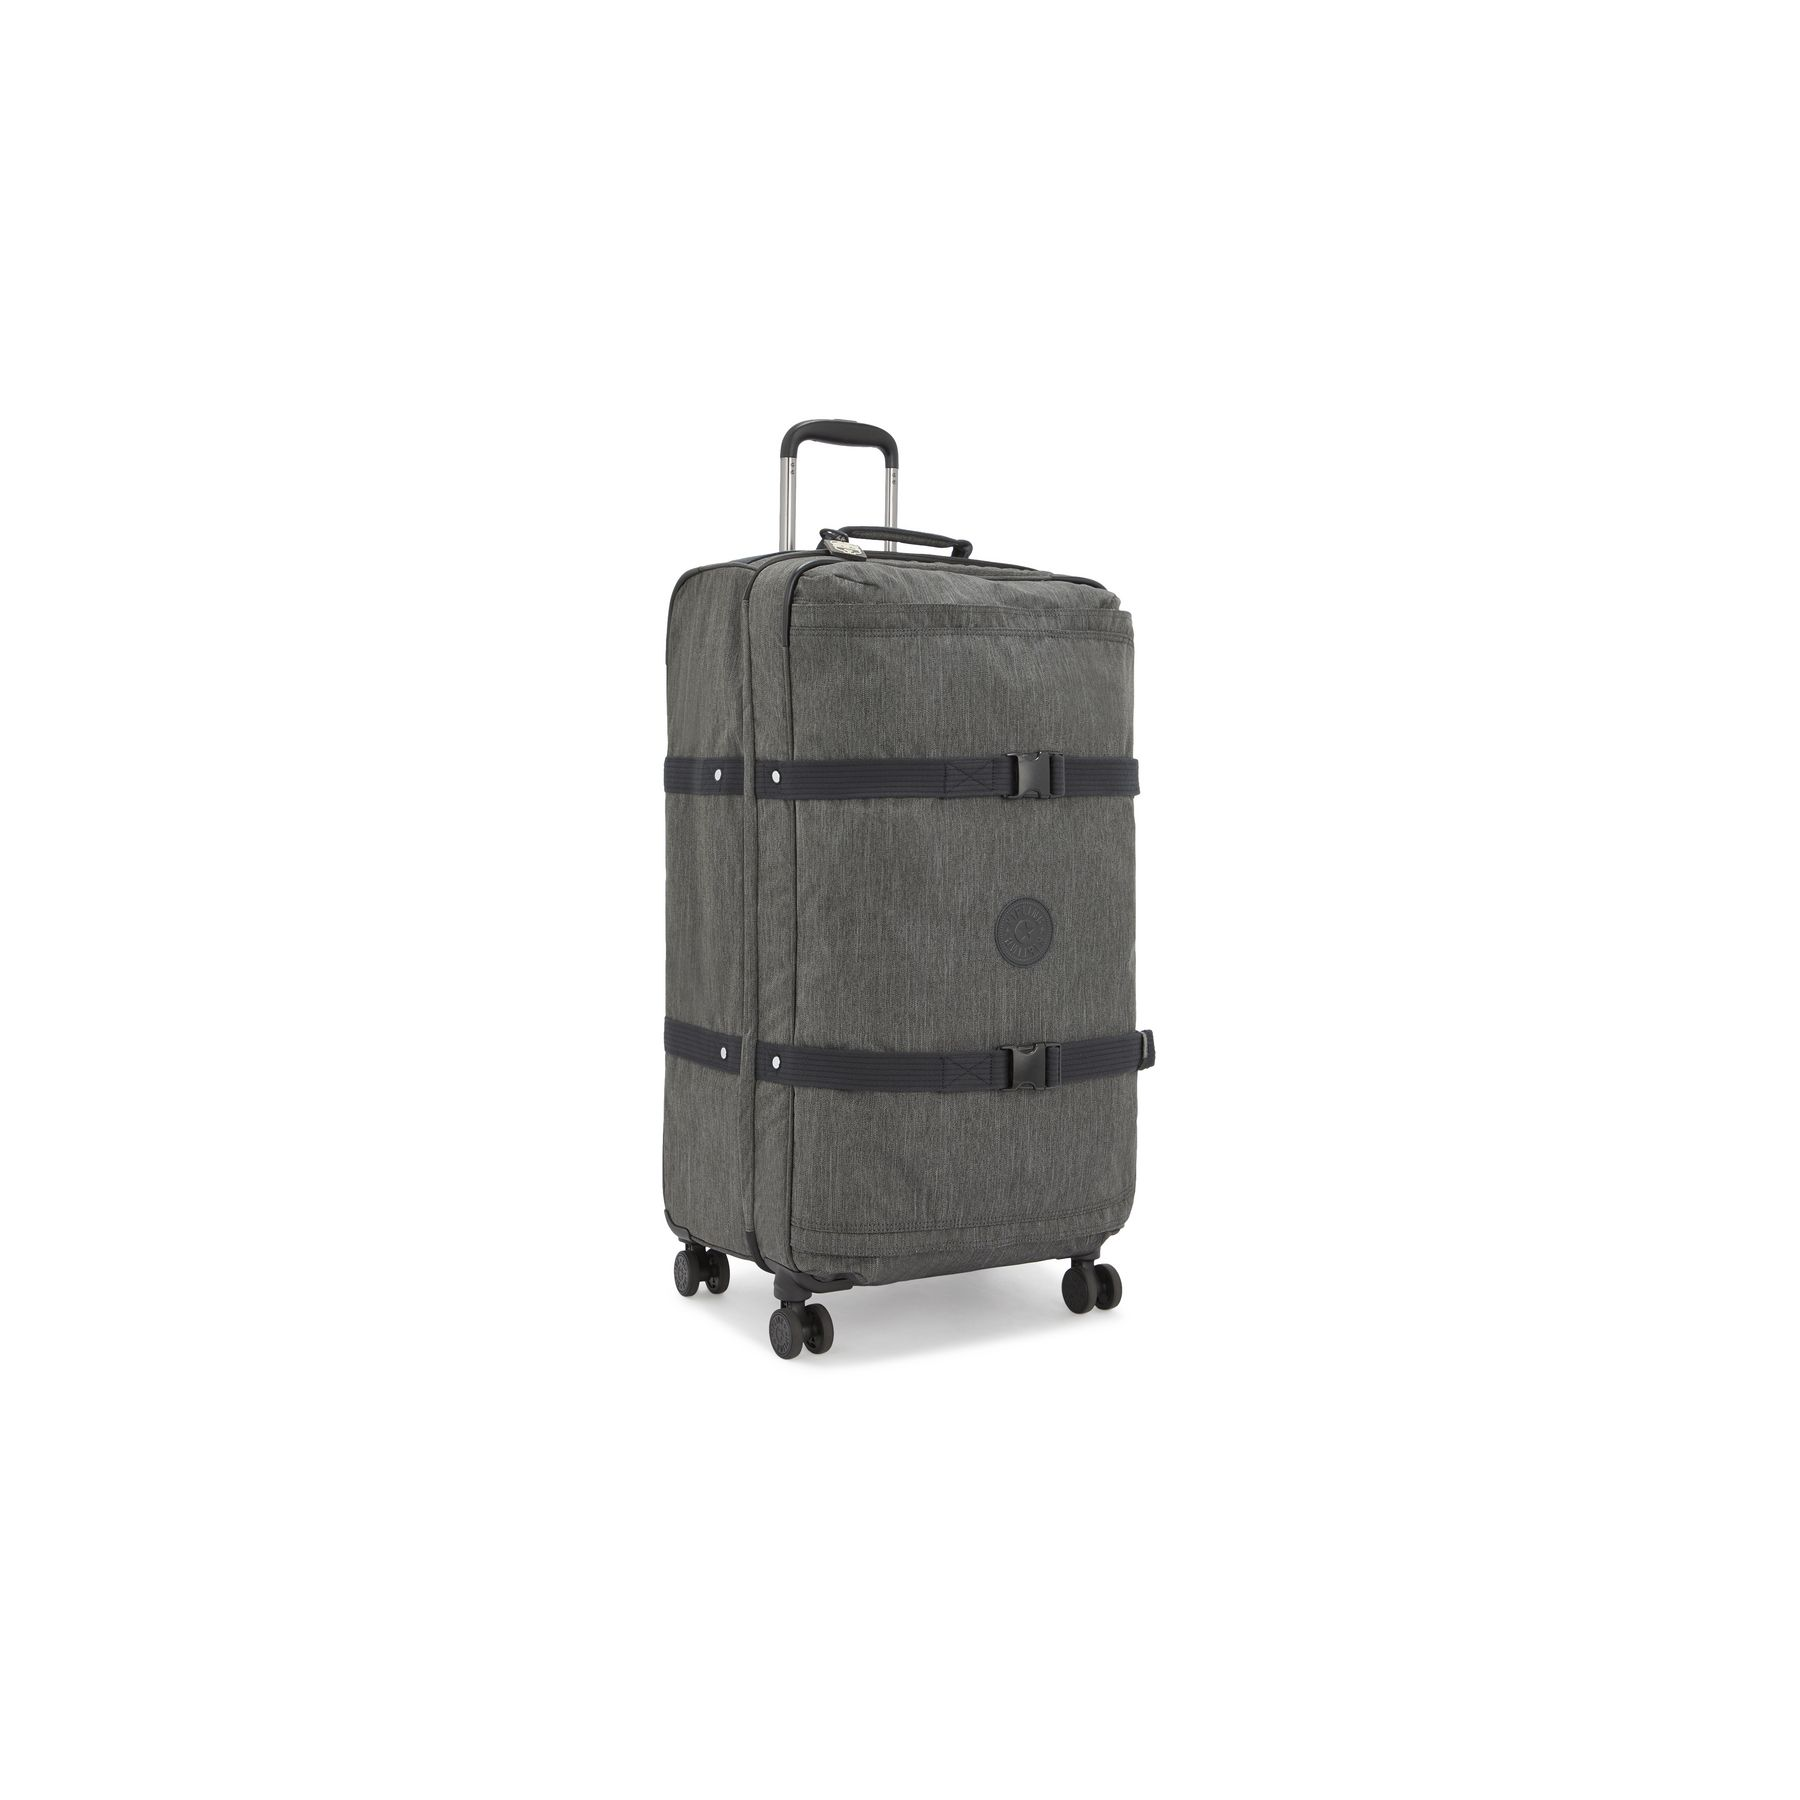 SPONTANEOUS L LUGGAGE by Kipling